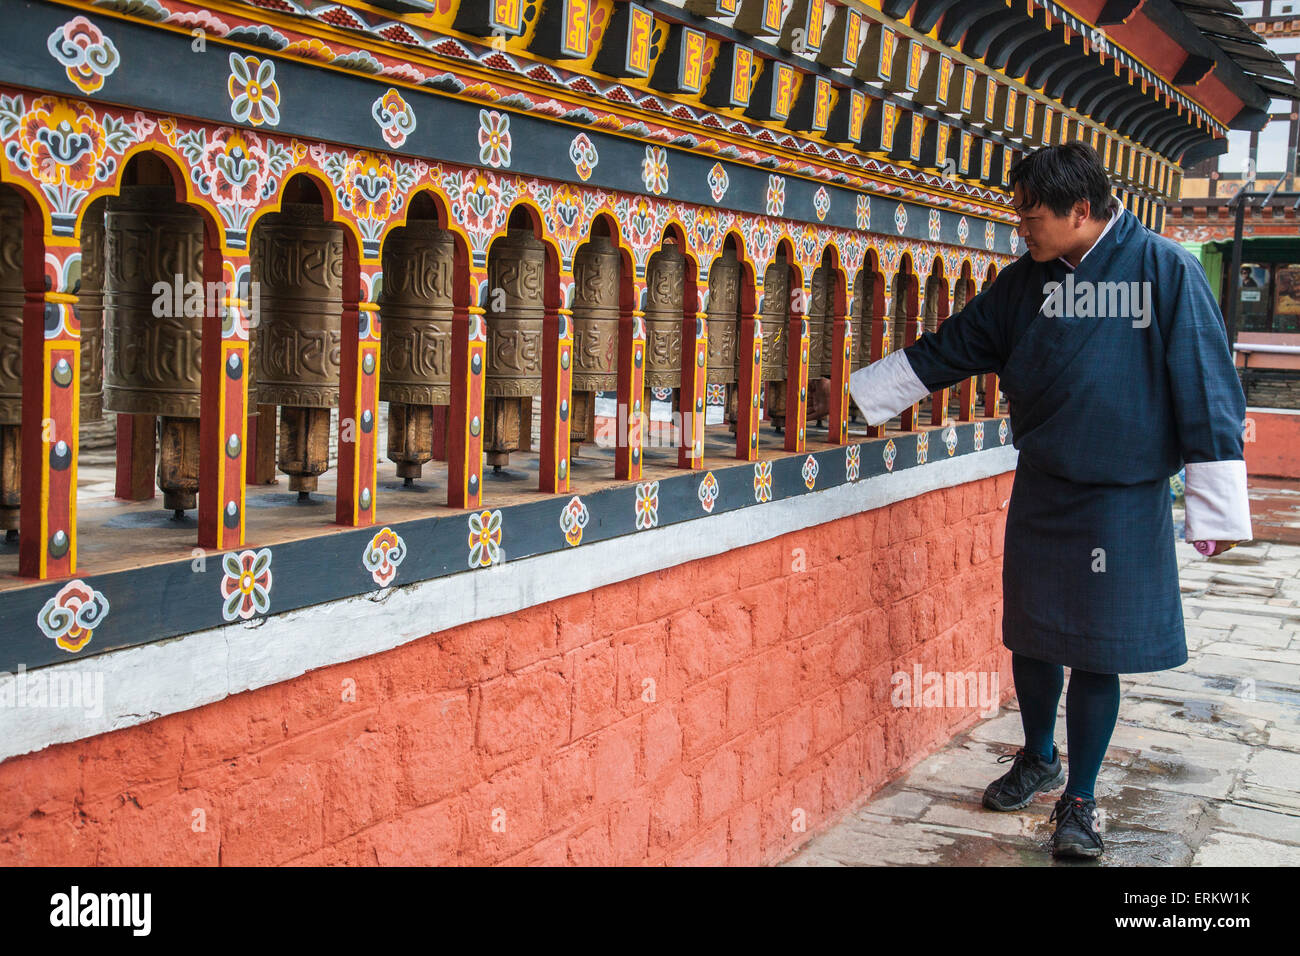 A man rotates the roller-books of the Monastery of Rinpung Dzong which are used to pray, Paro, Bhutan, Asia - Stock Image